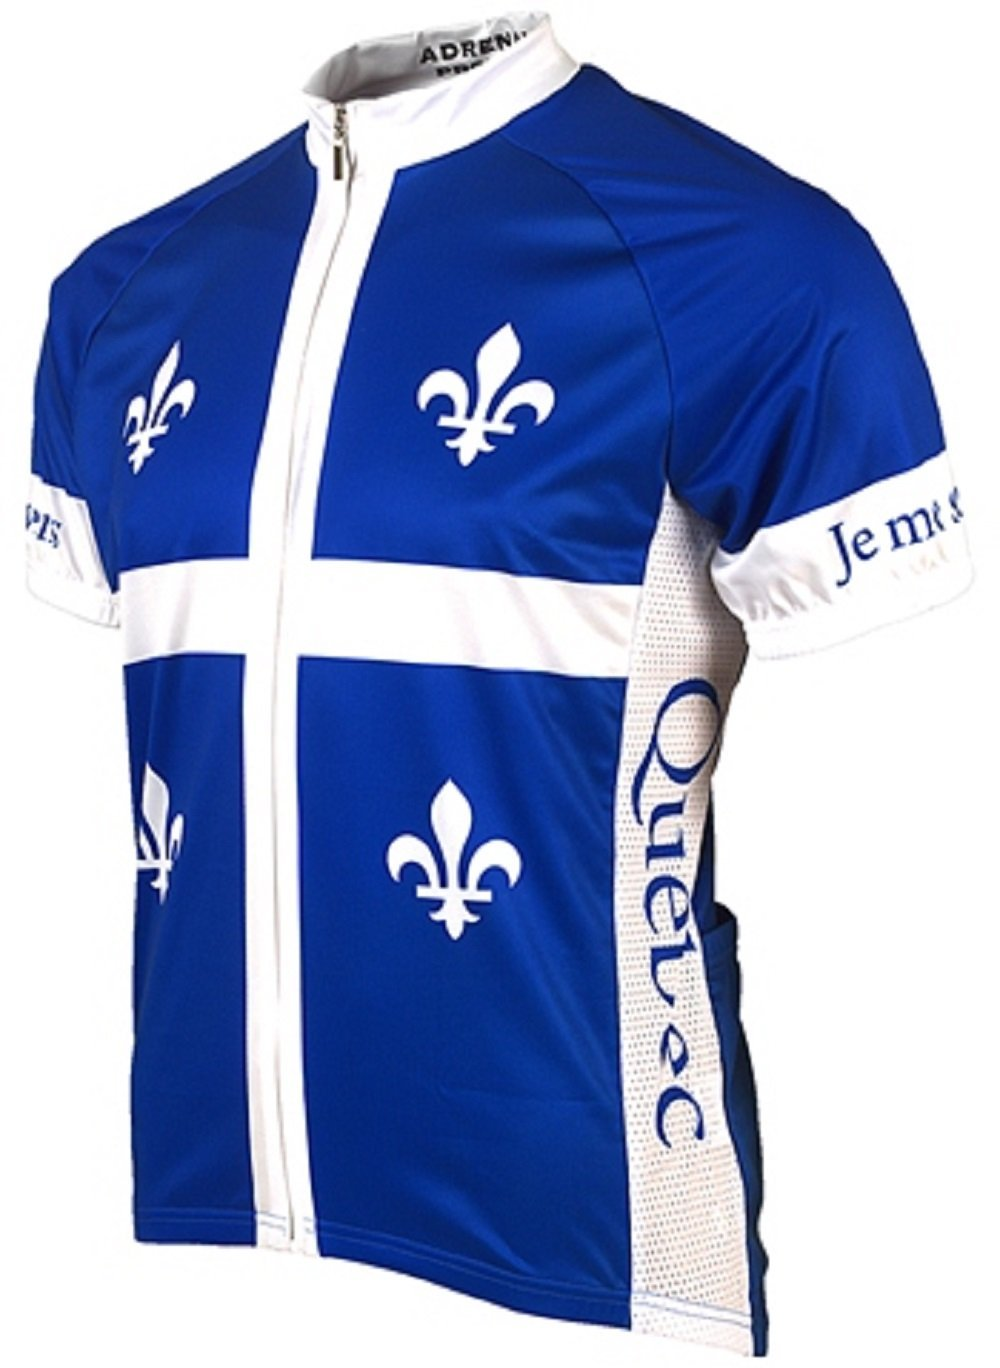 Adrenaline Promotions Canadian Provinces Quebec Cycling Jersey ADRE2